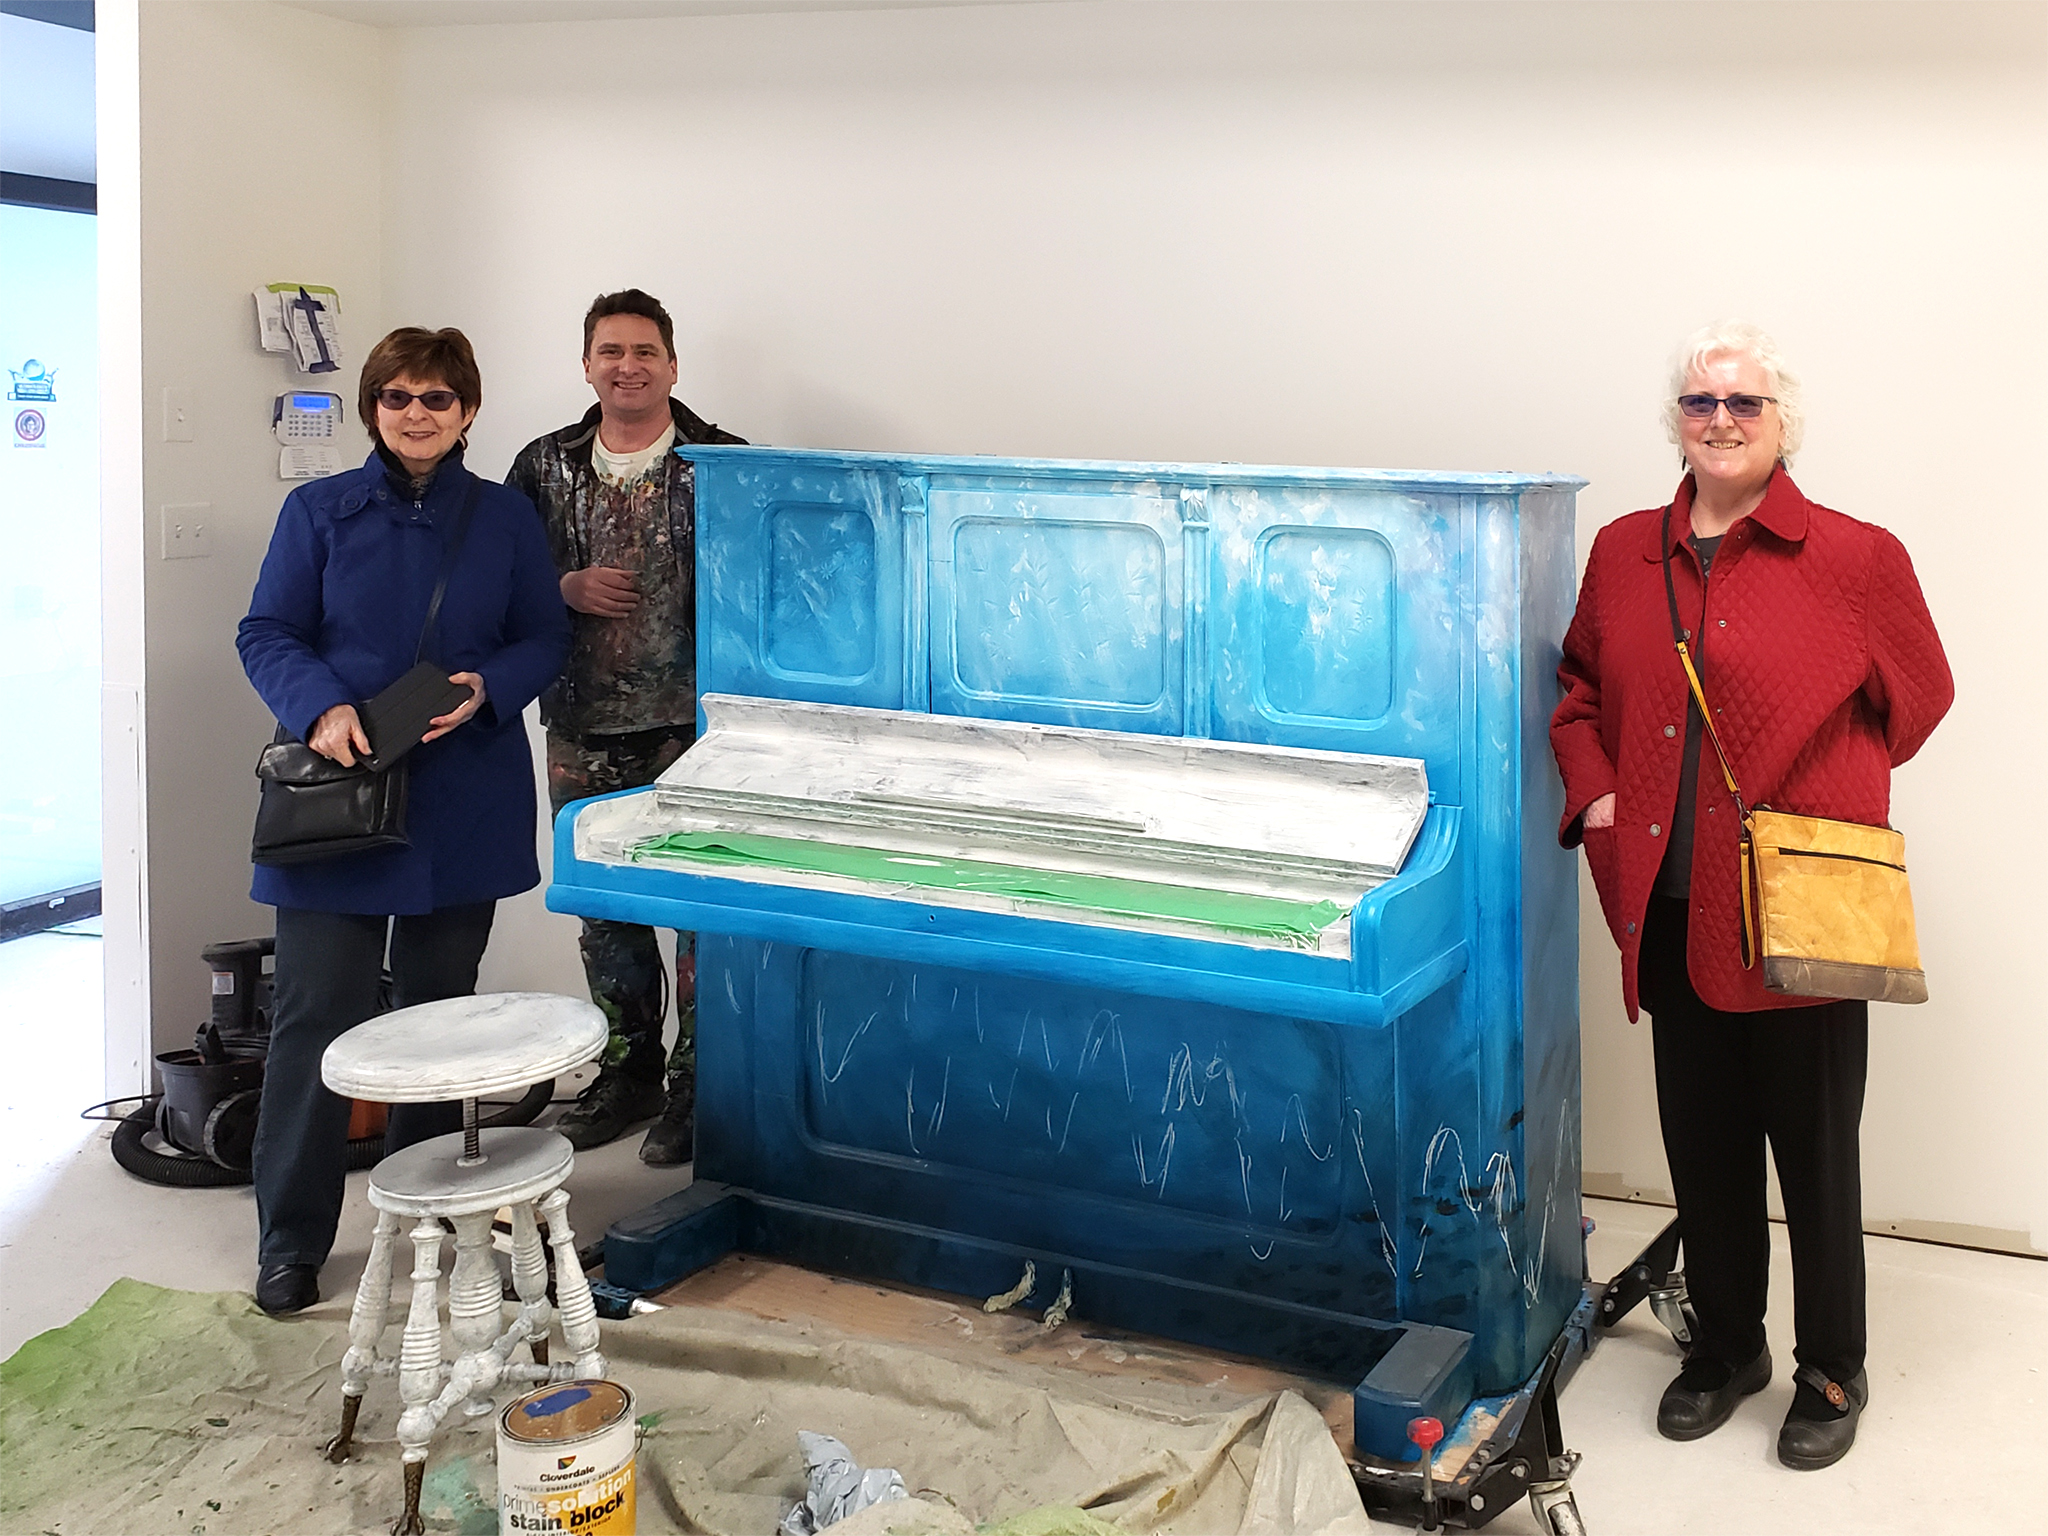 Shannon Bellamy (VP, Festival of Murals Society), Kris Friesen and Peggy Grigor, during construction (Feb. 22, 2020).